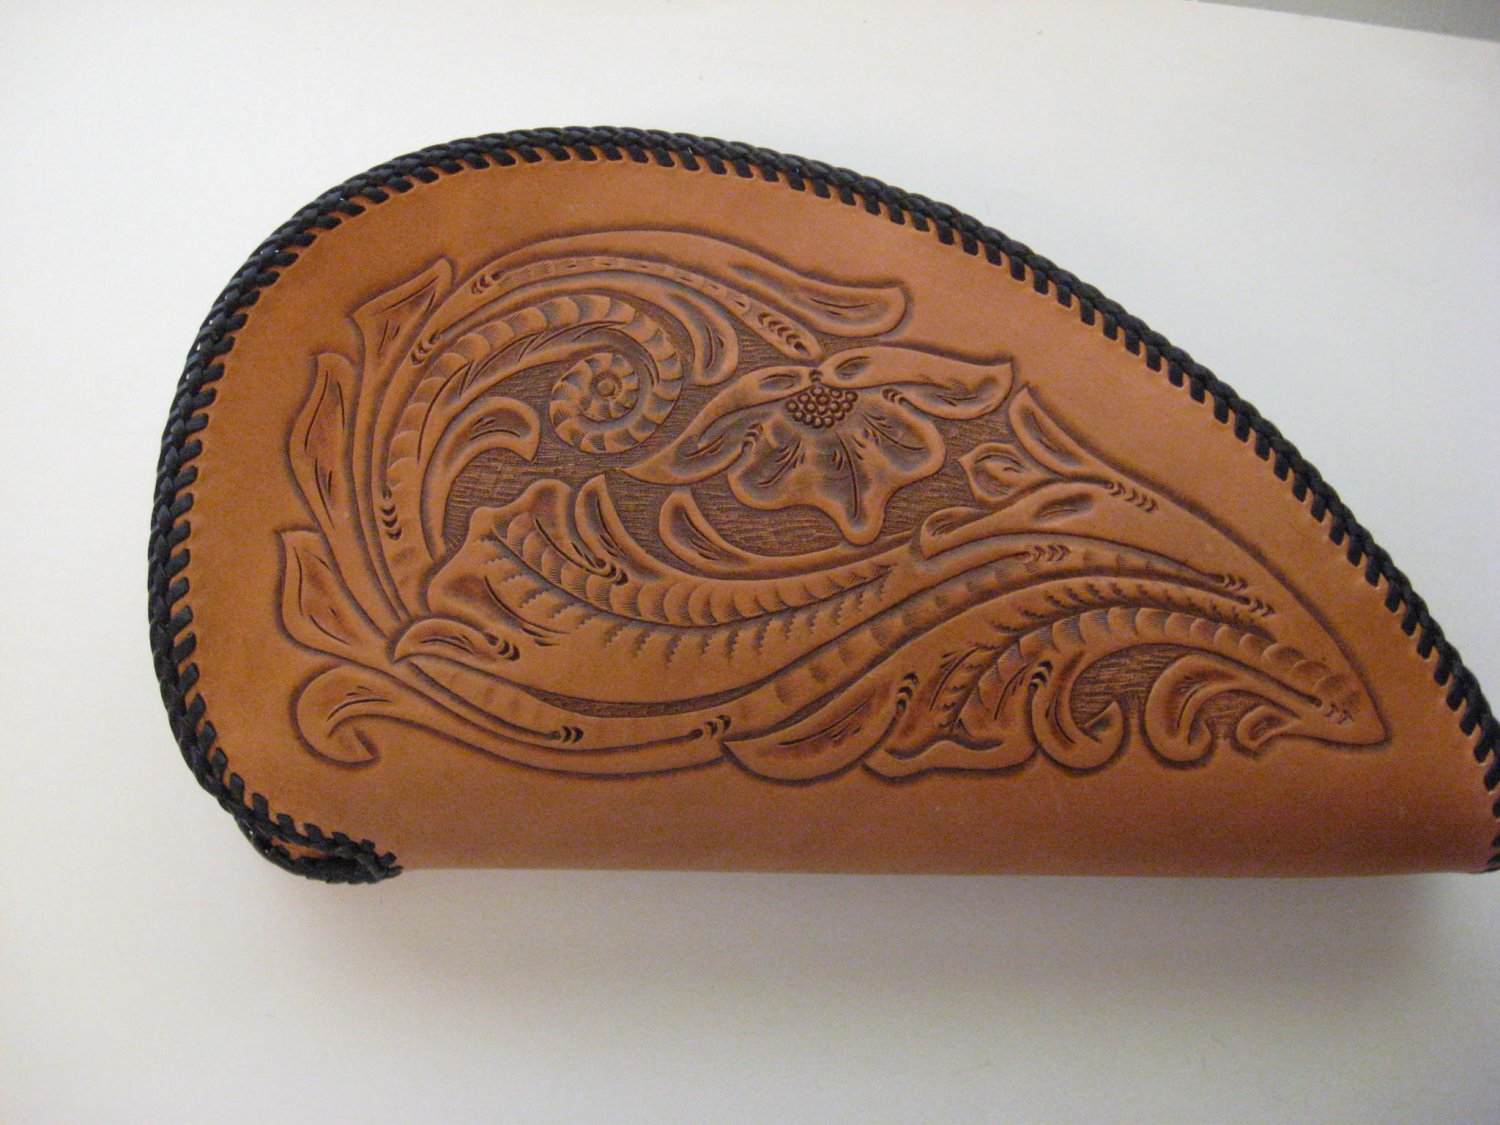 Pistol Case, Chestnut Tan Finish, Handtooled Leather, Synthetic Wool Liner, Brass Zipper G0002